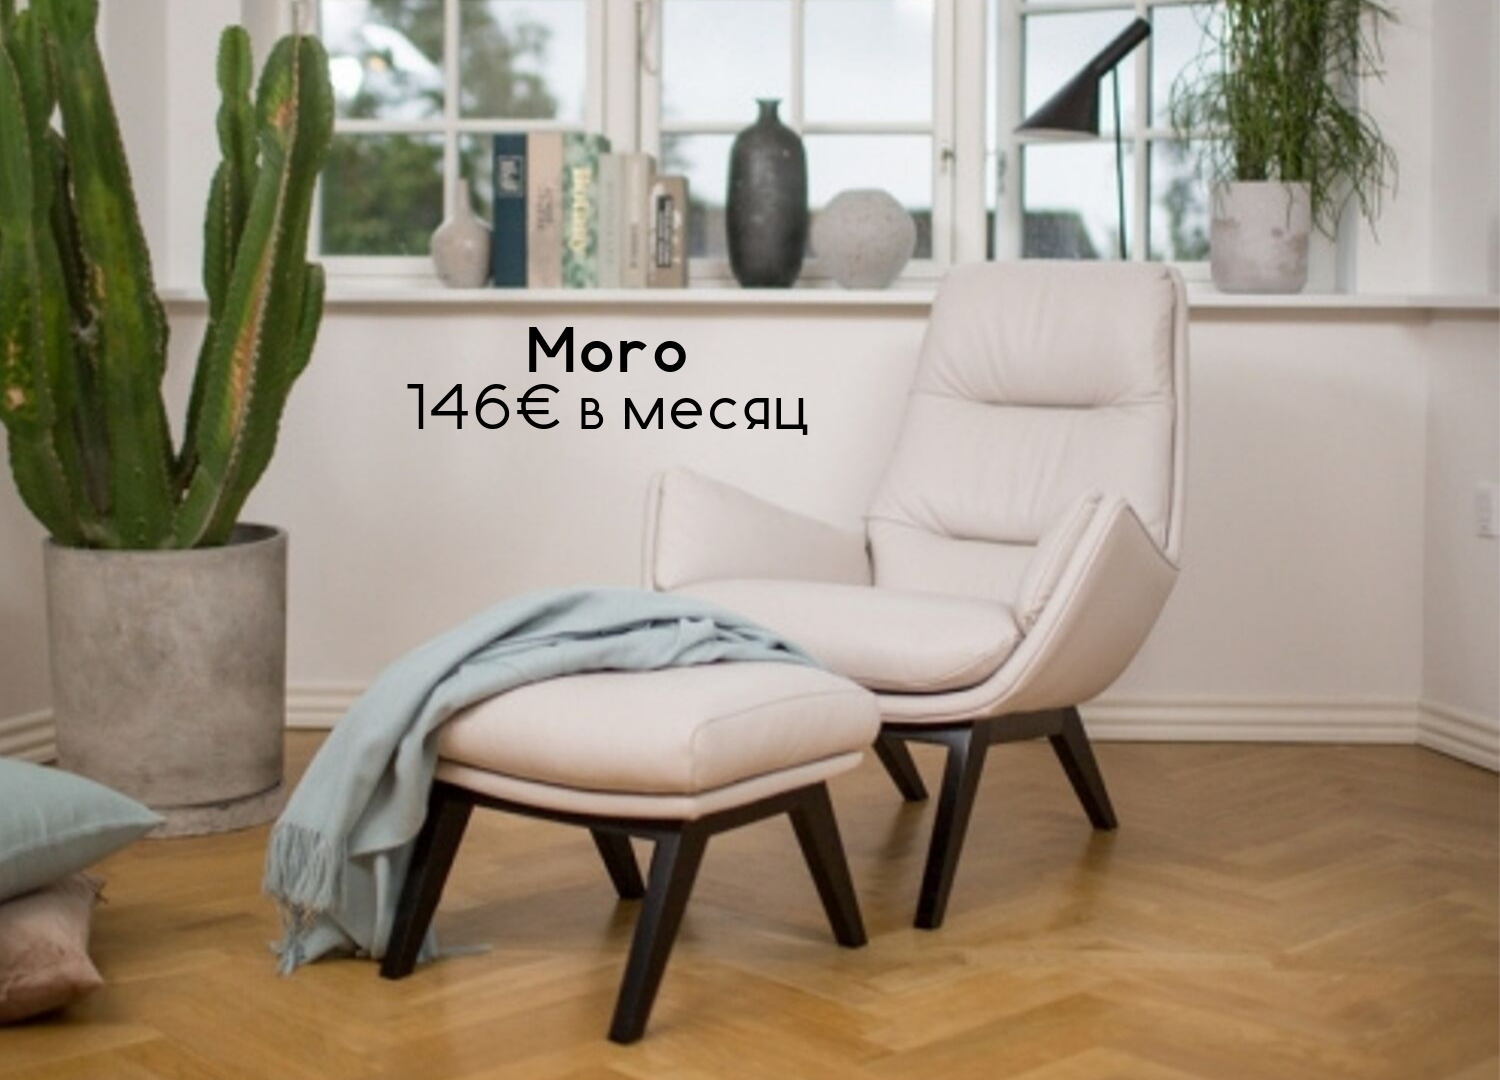 moro lounge chair